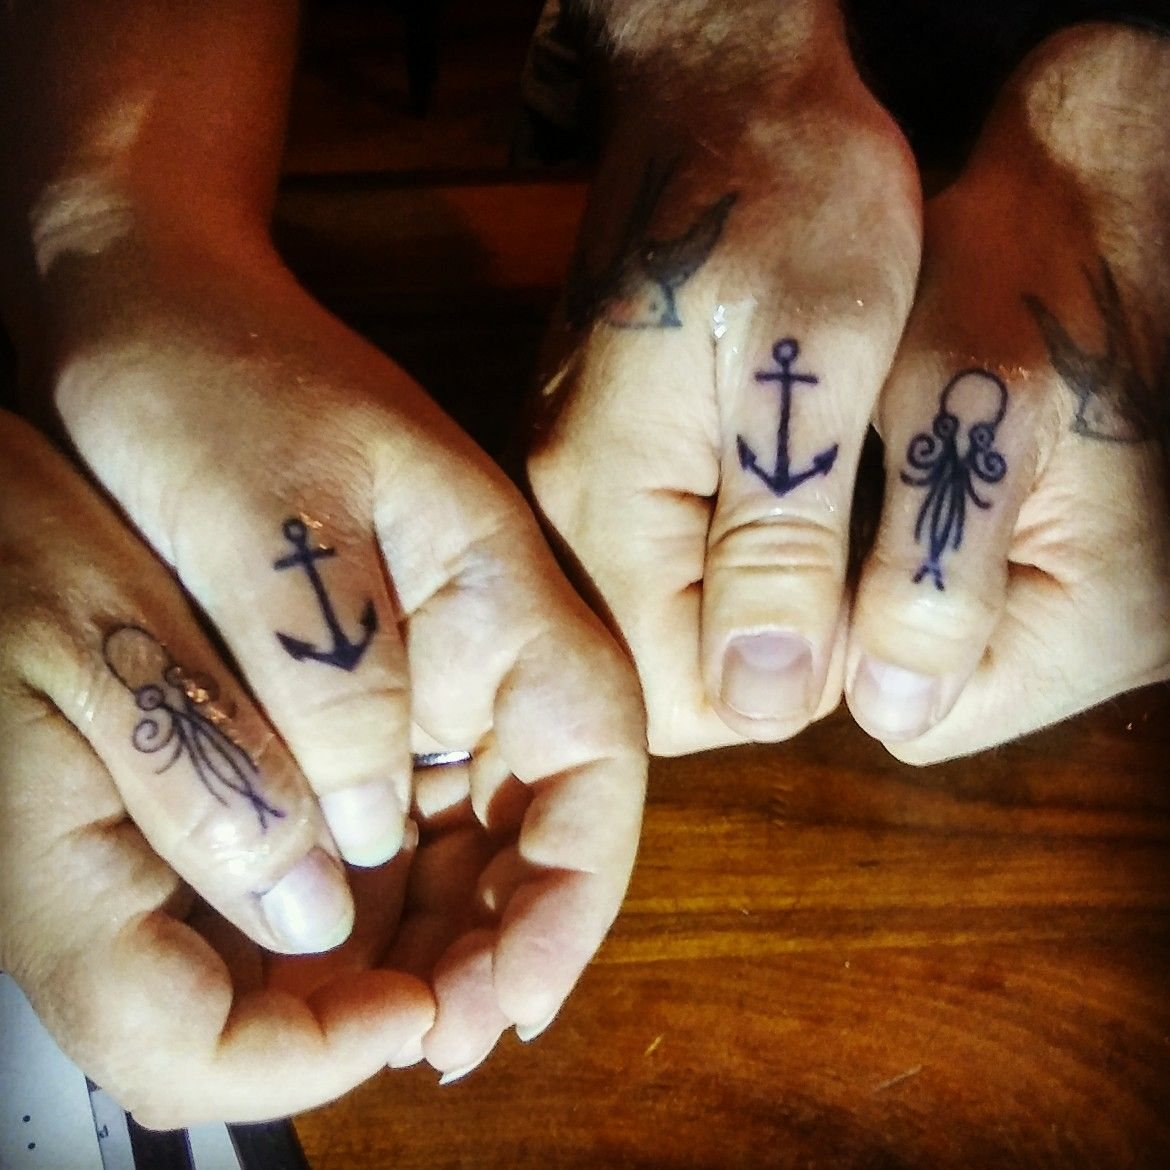 67d8784d028df Thumb tattoos my husband and I got while on vacation in St. Augustine.  Tattoos 6 and 7 for me. Octopus and anchor #thumbtattoo #octopustattoo  #anchortattoo